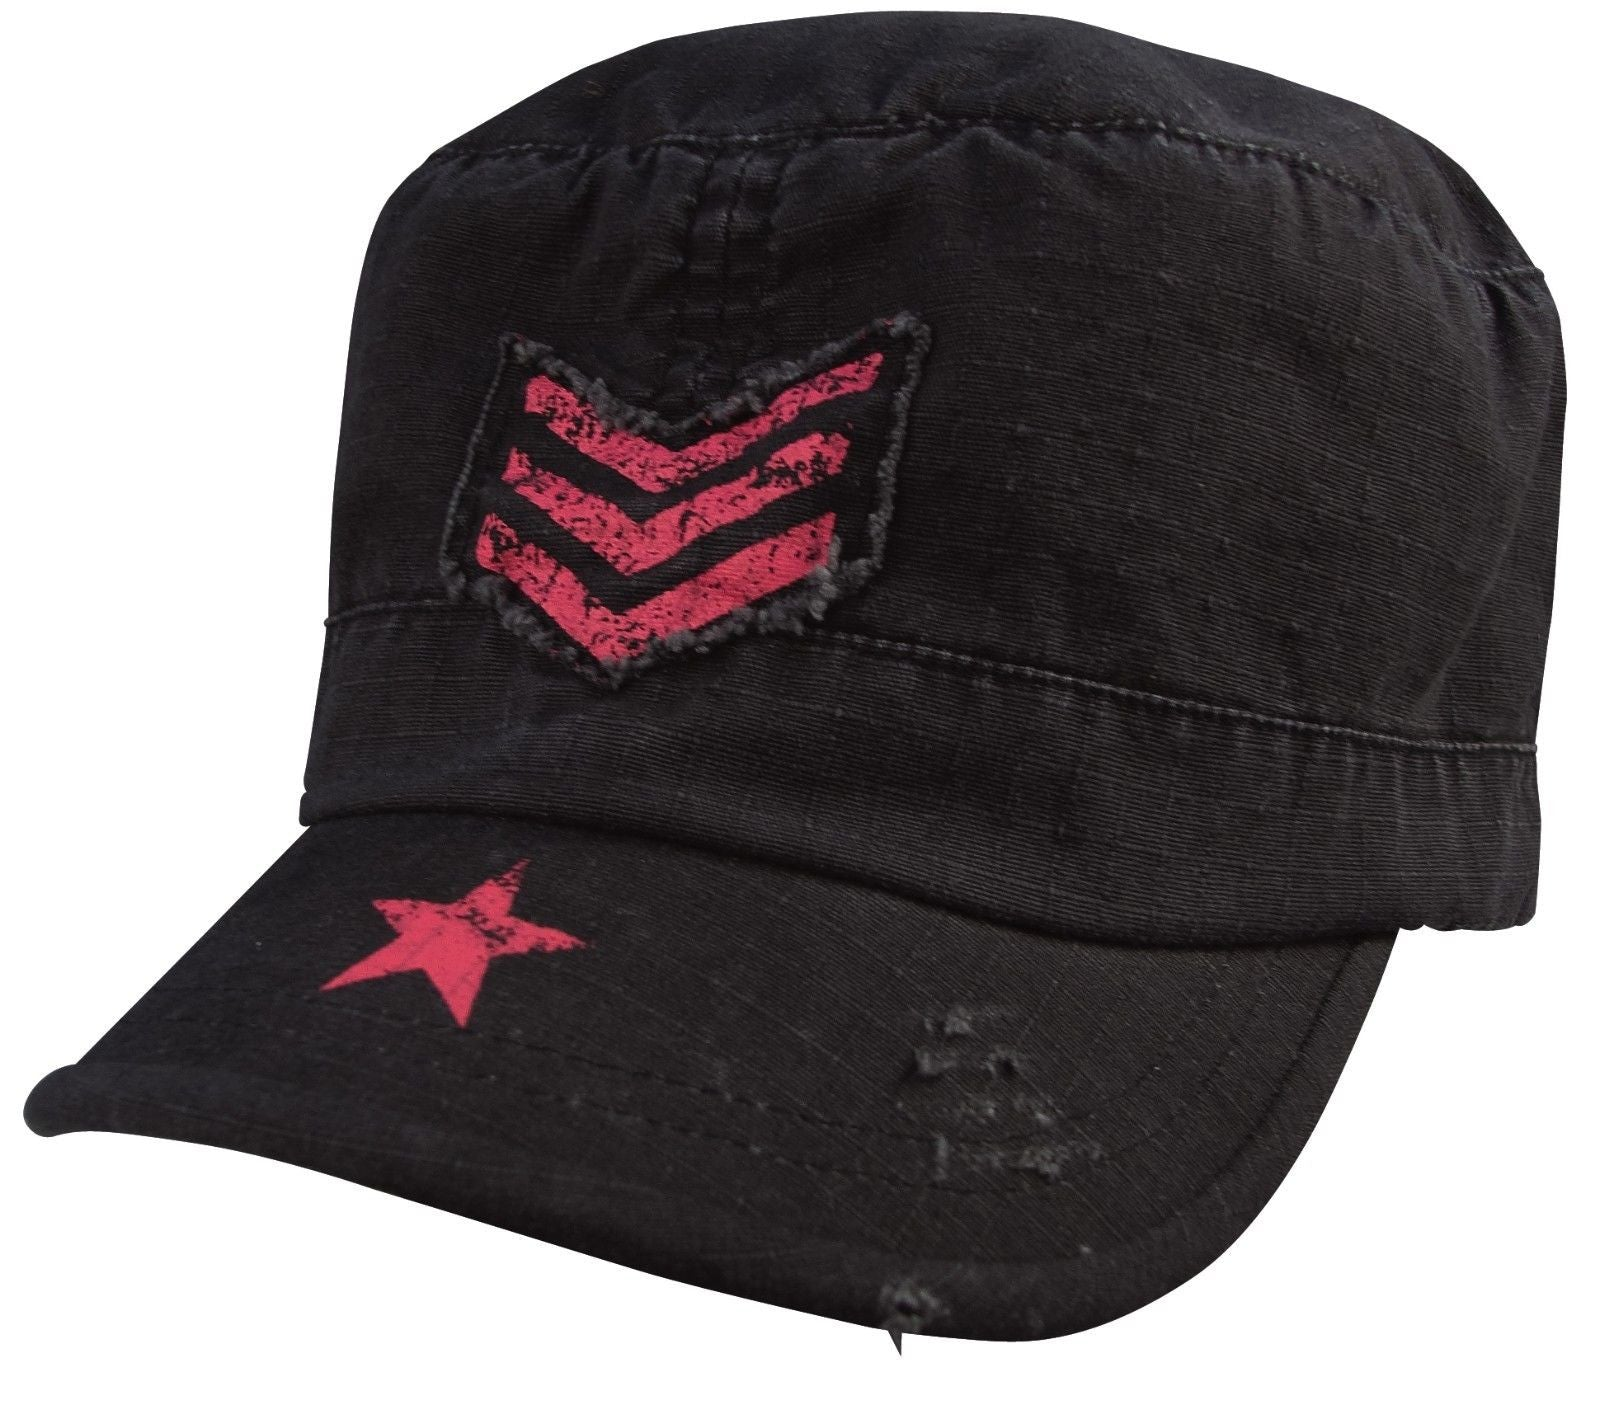 e98e75bf9f2 Women s Vintage Military Caps - Womans Adjustable Fatigue Hats - Rip ...